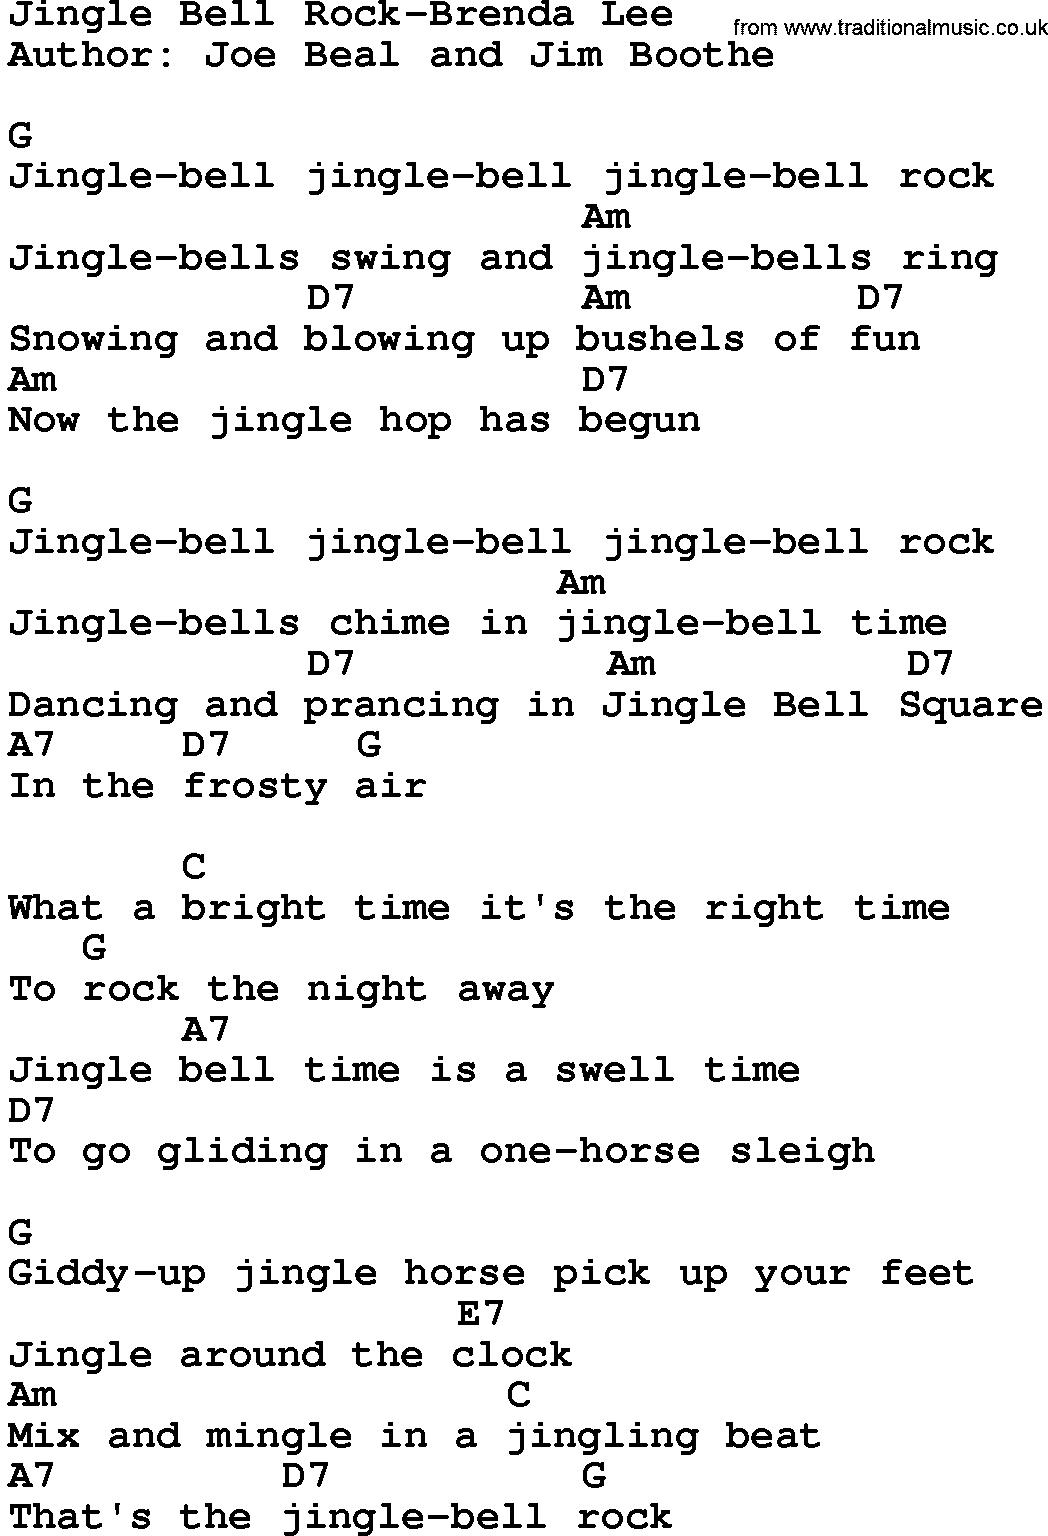 Country Music Jingle Bell Rock Brenda Lee Lyrics And Chords Lyrics And Chords Country Music Songs Song Lyrics And Chords